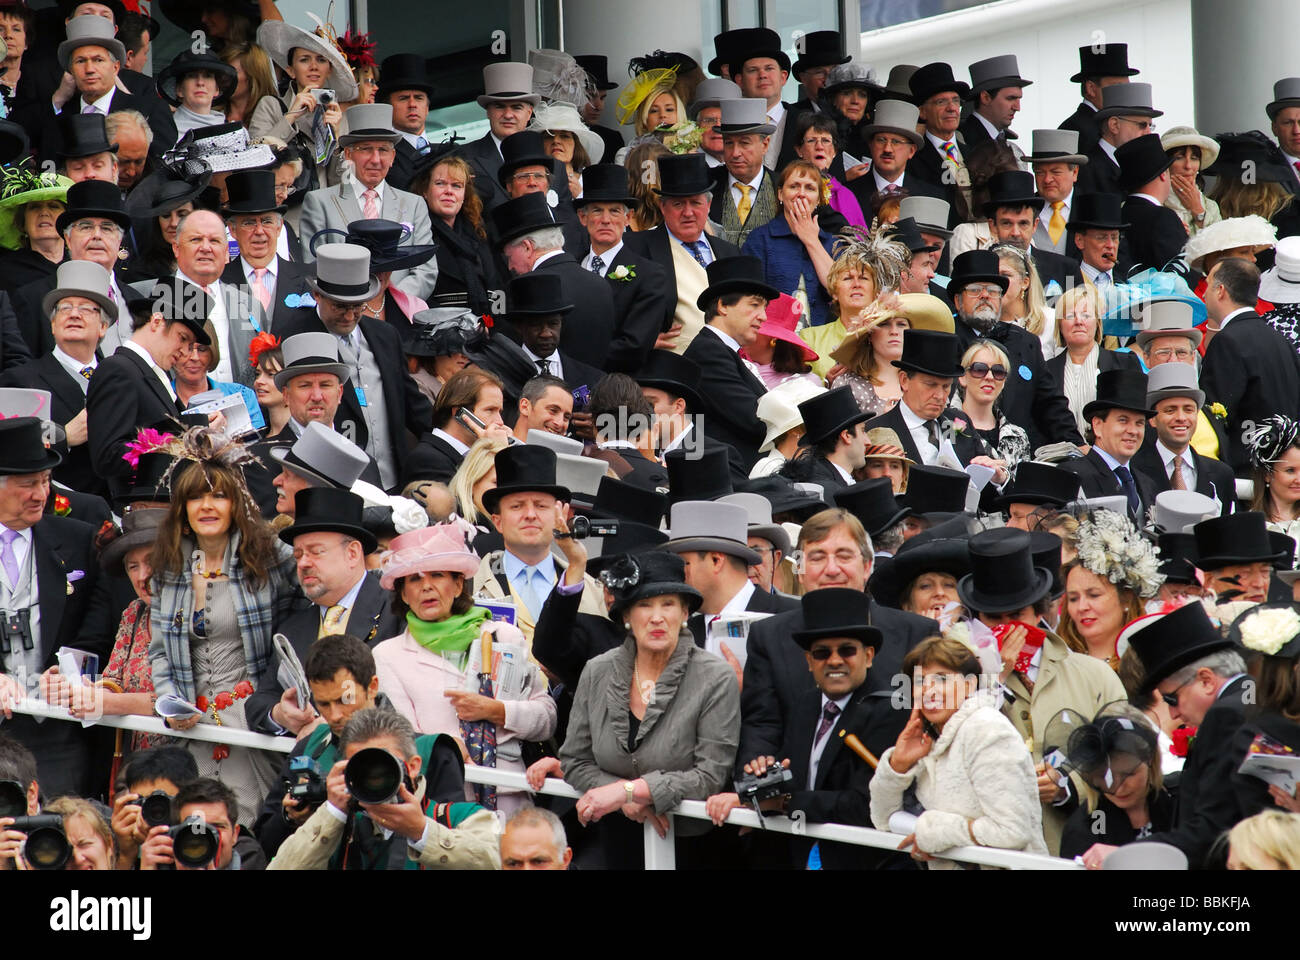 A crowd of top hatted men and elegantly dressed women race goers in the enclosure  Derby Day 2009 Stock Photo